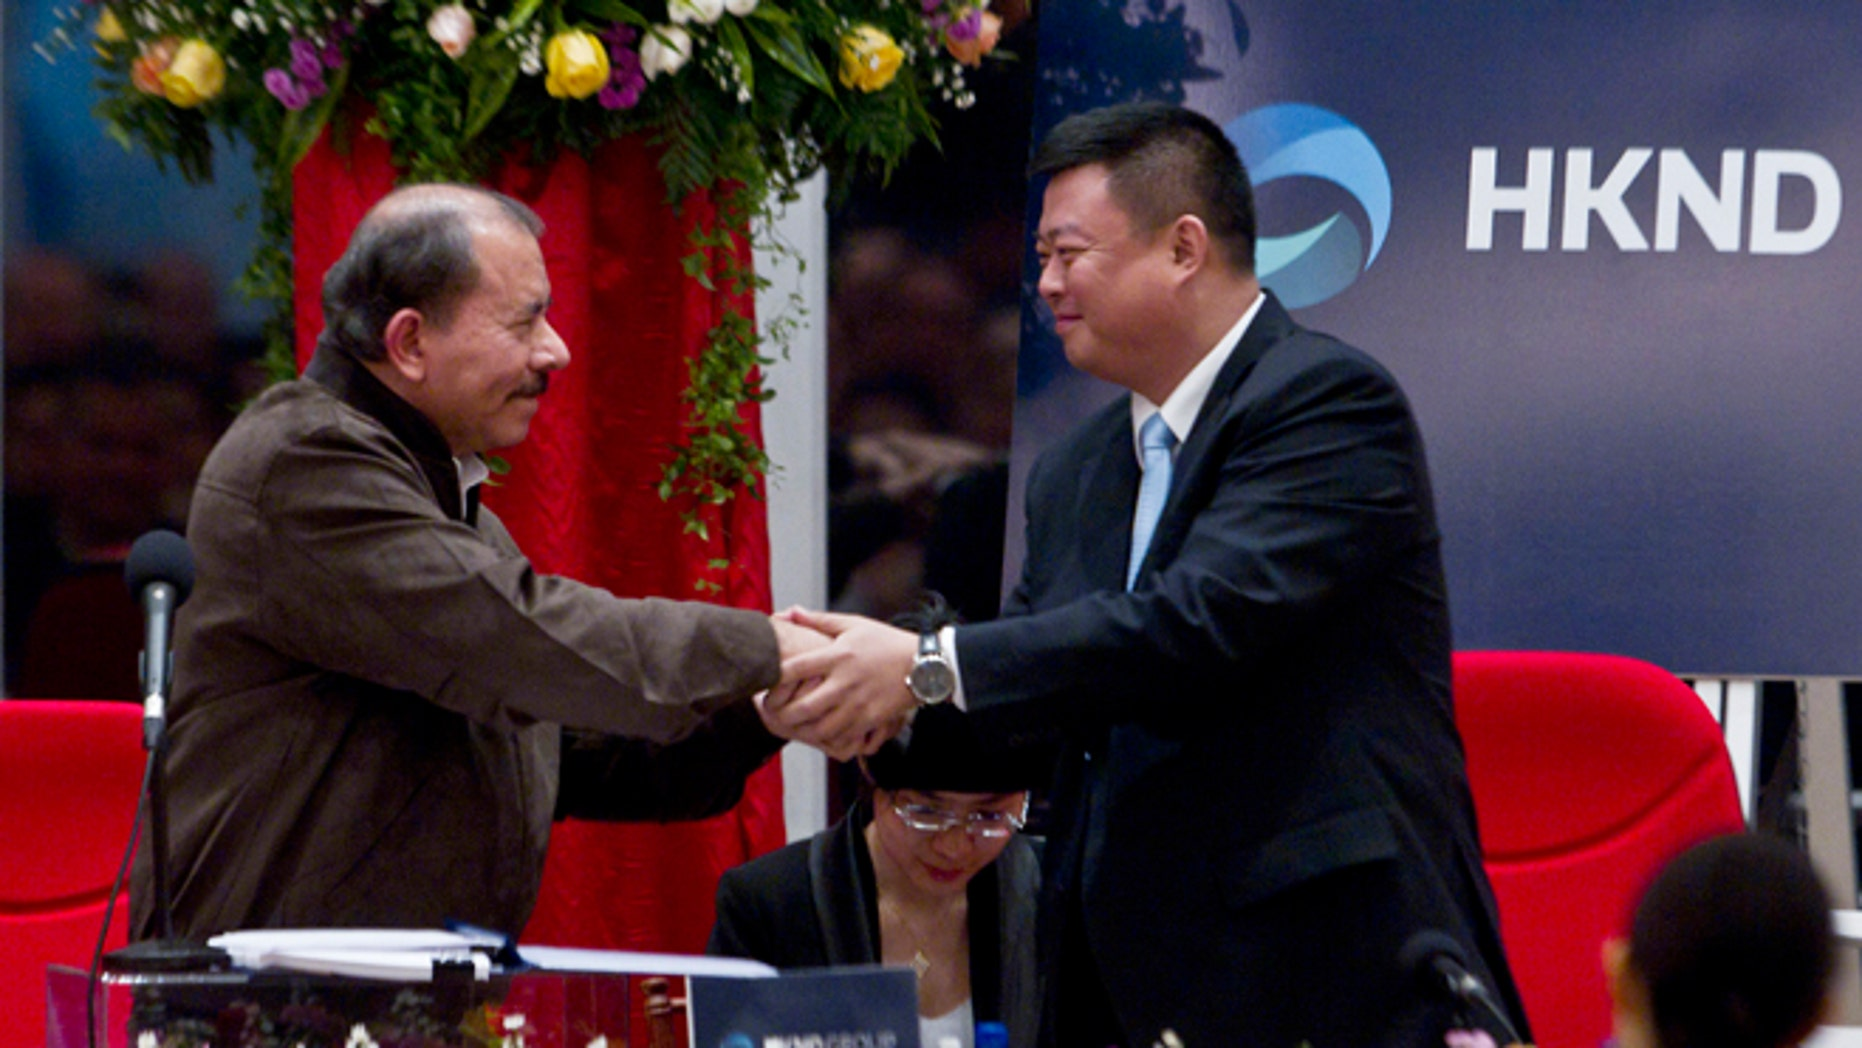 Nicaragua's President Daniel Ortega, left, and Chinese businessman Wang Jing shake hands before signing a concession agreement for the construction of a multibillion-dollar canal at the Casa de los Pueblos in Managua, Nicaragua, Friday, June 14, 2013.  Legislation approved by a 61-25 vote in the National Assembly dominated by Ortega's Sandinista Front contains no specific route for the canal and virtually no details of its financing or economic viability, but it grants a Hong Kong-based company 50 years of exclusive rights to study the plan and build and operate a canal in exchange for Nicaragua receiving a minority share of any profits. (AP Photo/Esteban Felix)